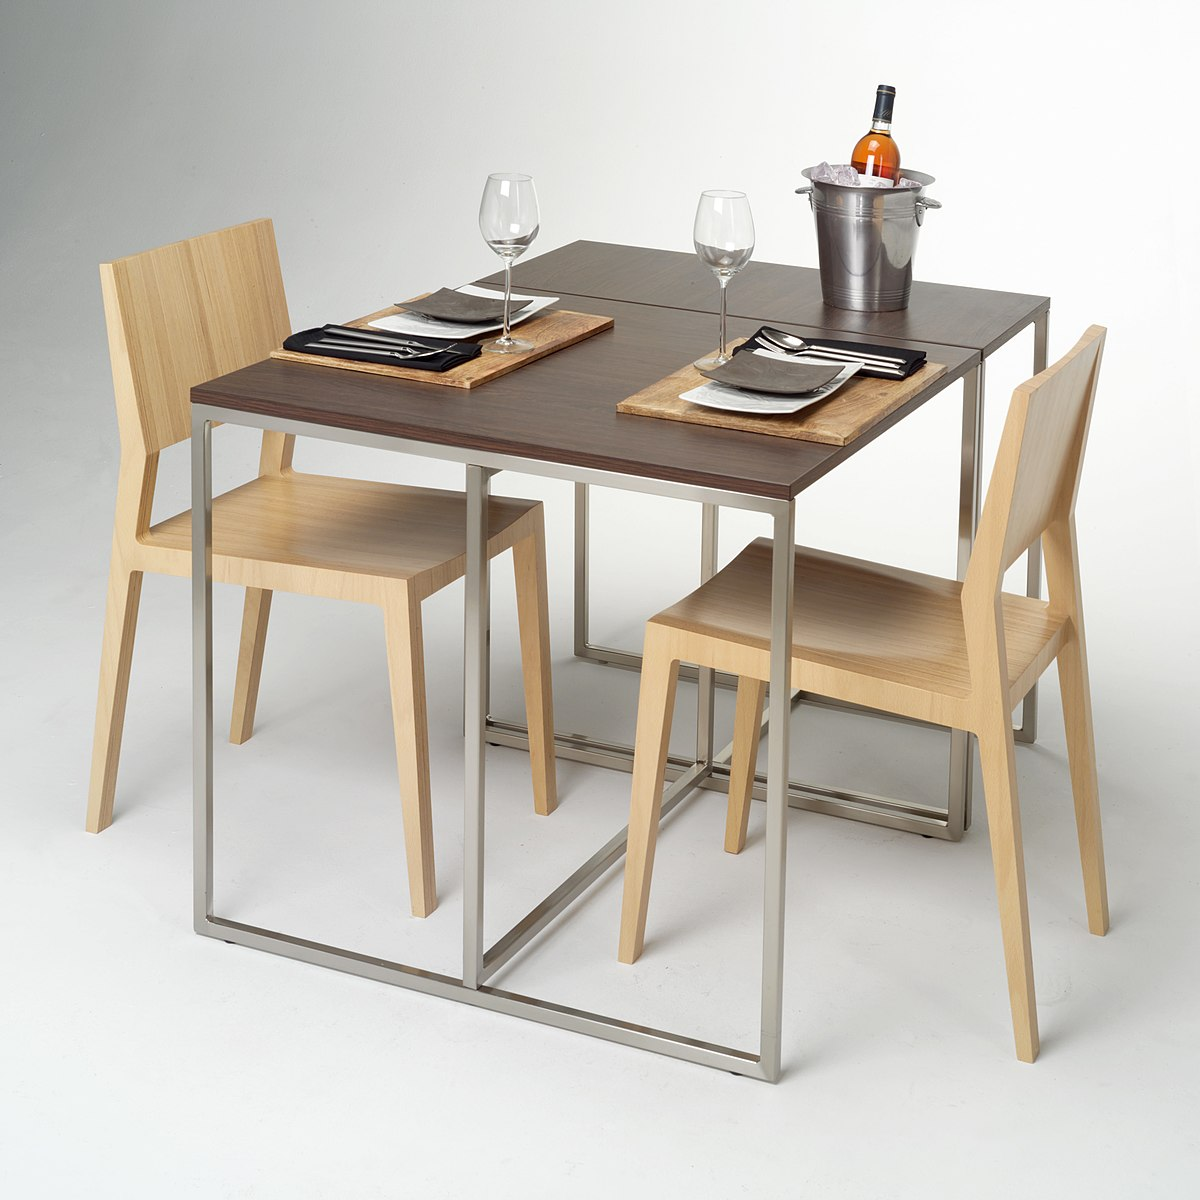 Table Furniture furniture - wikipedia